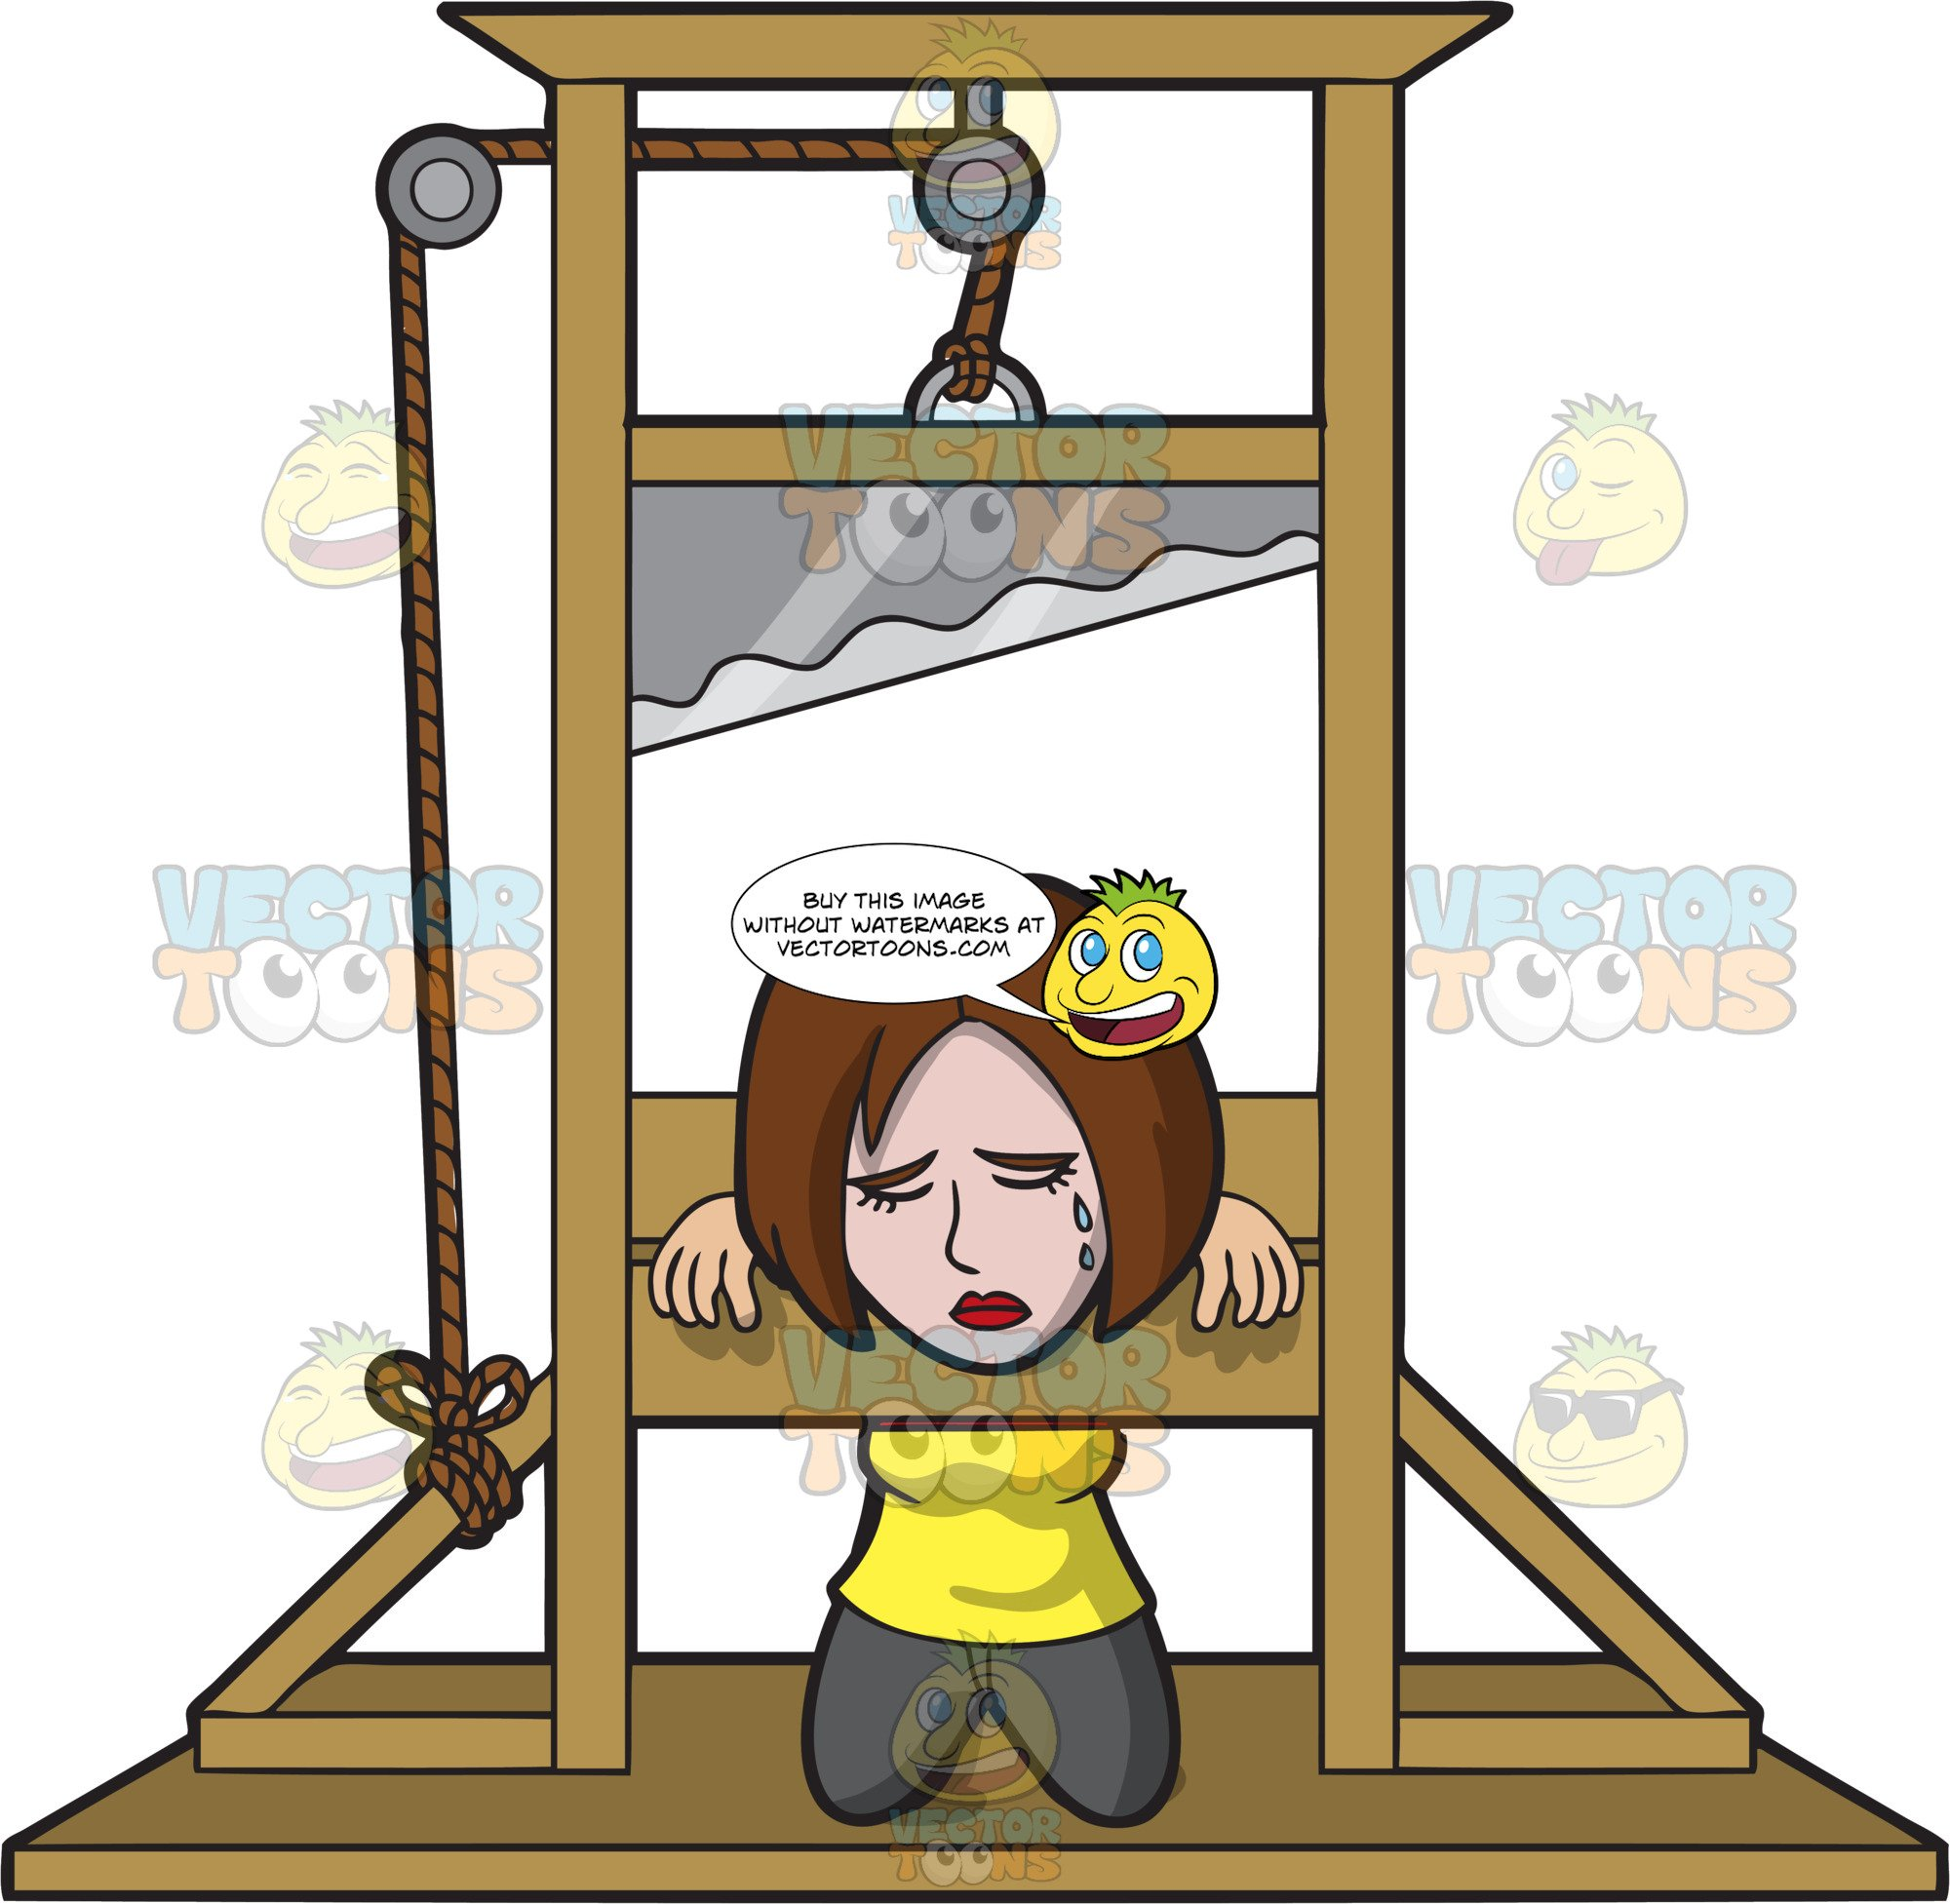 A Woman Sentenced To Death In A Guillotine.